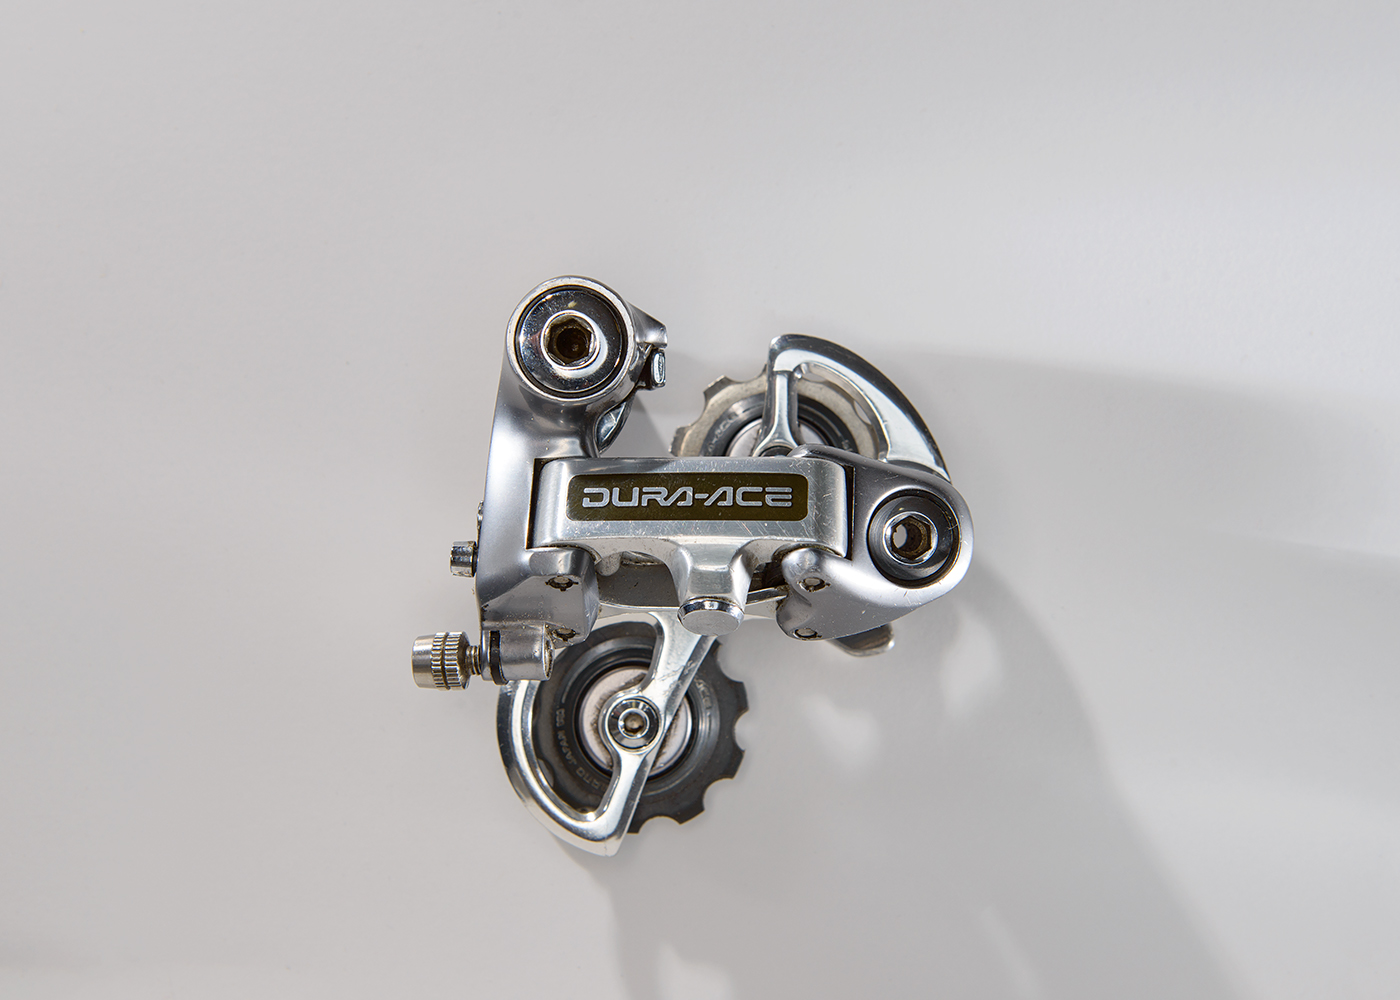 Shimano Dura-Ace 7400  It was introduced in 1985 and was one of the best derailleurs of it's era.